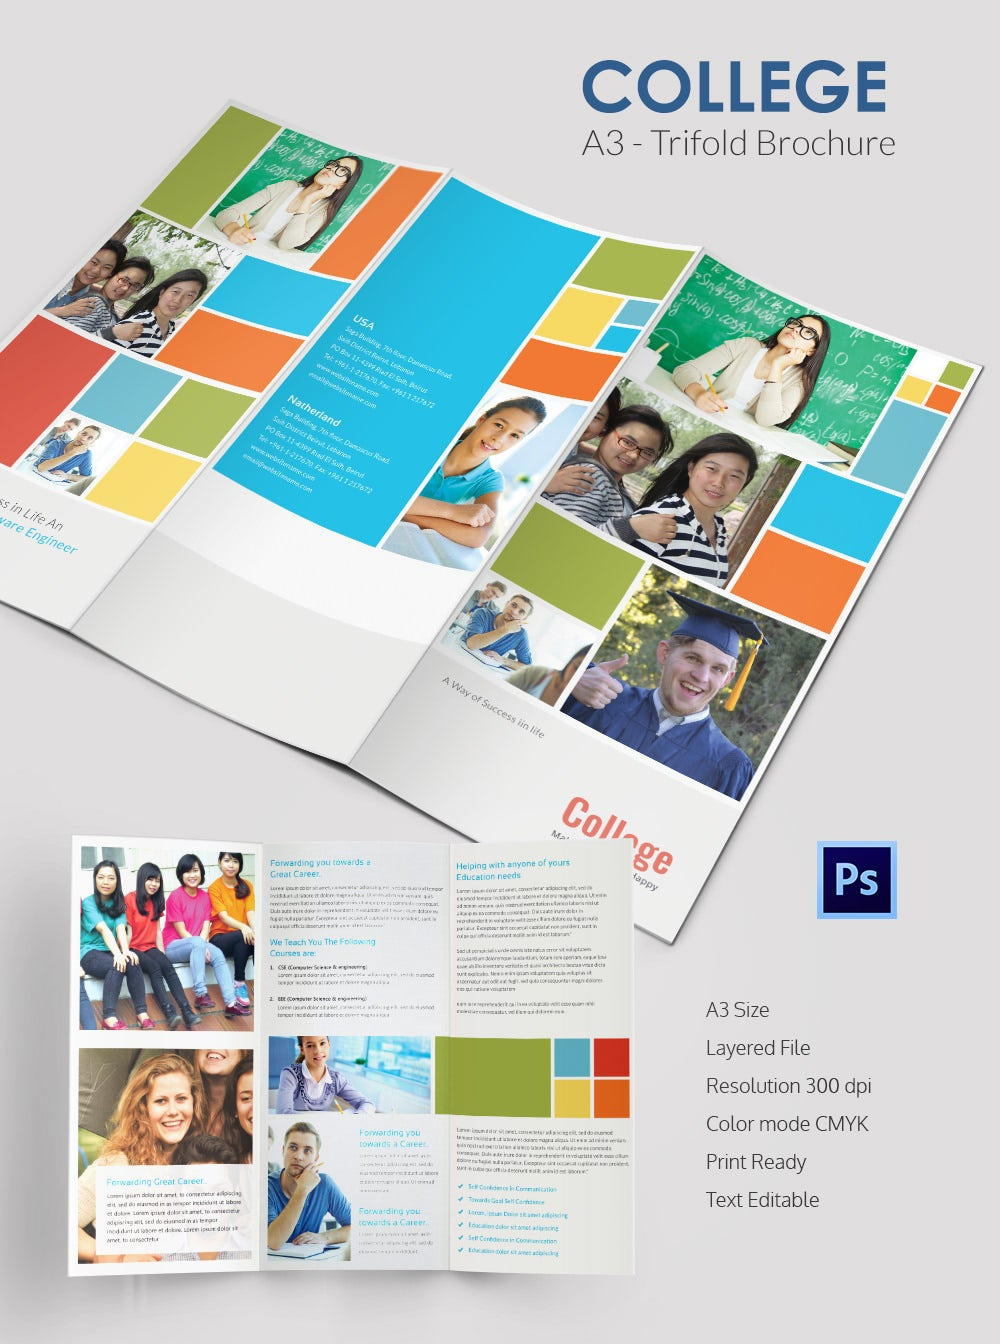 college brochure design ideas - college brochure template 34 free jpg psd indesign